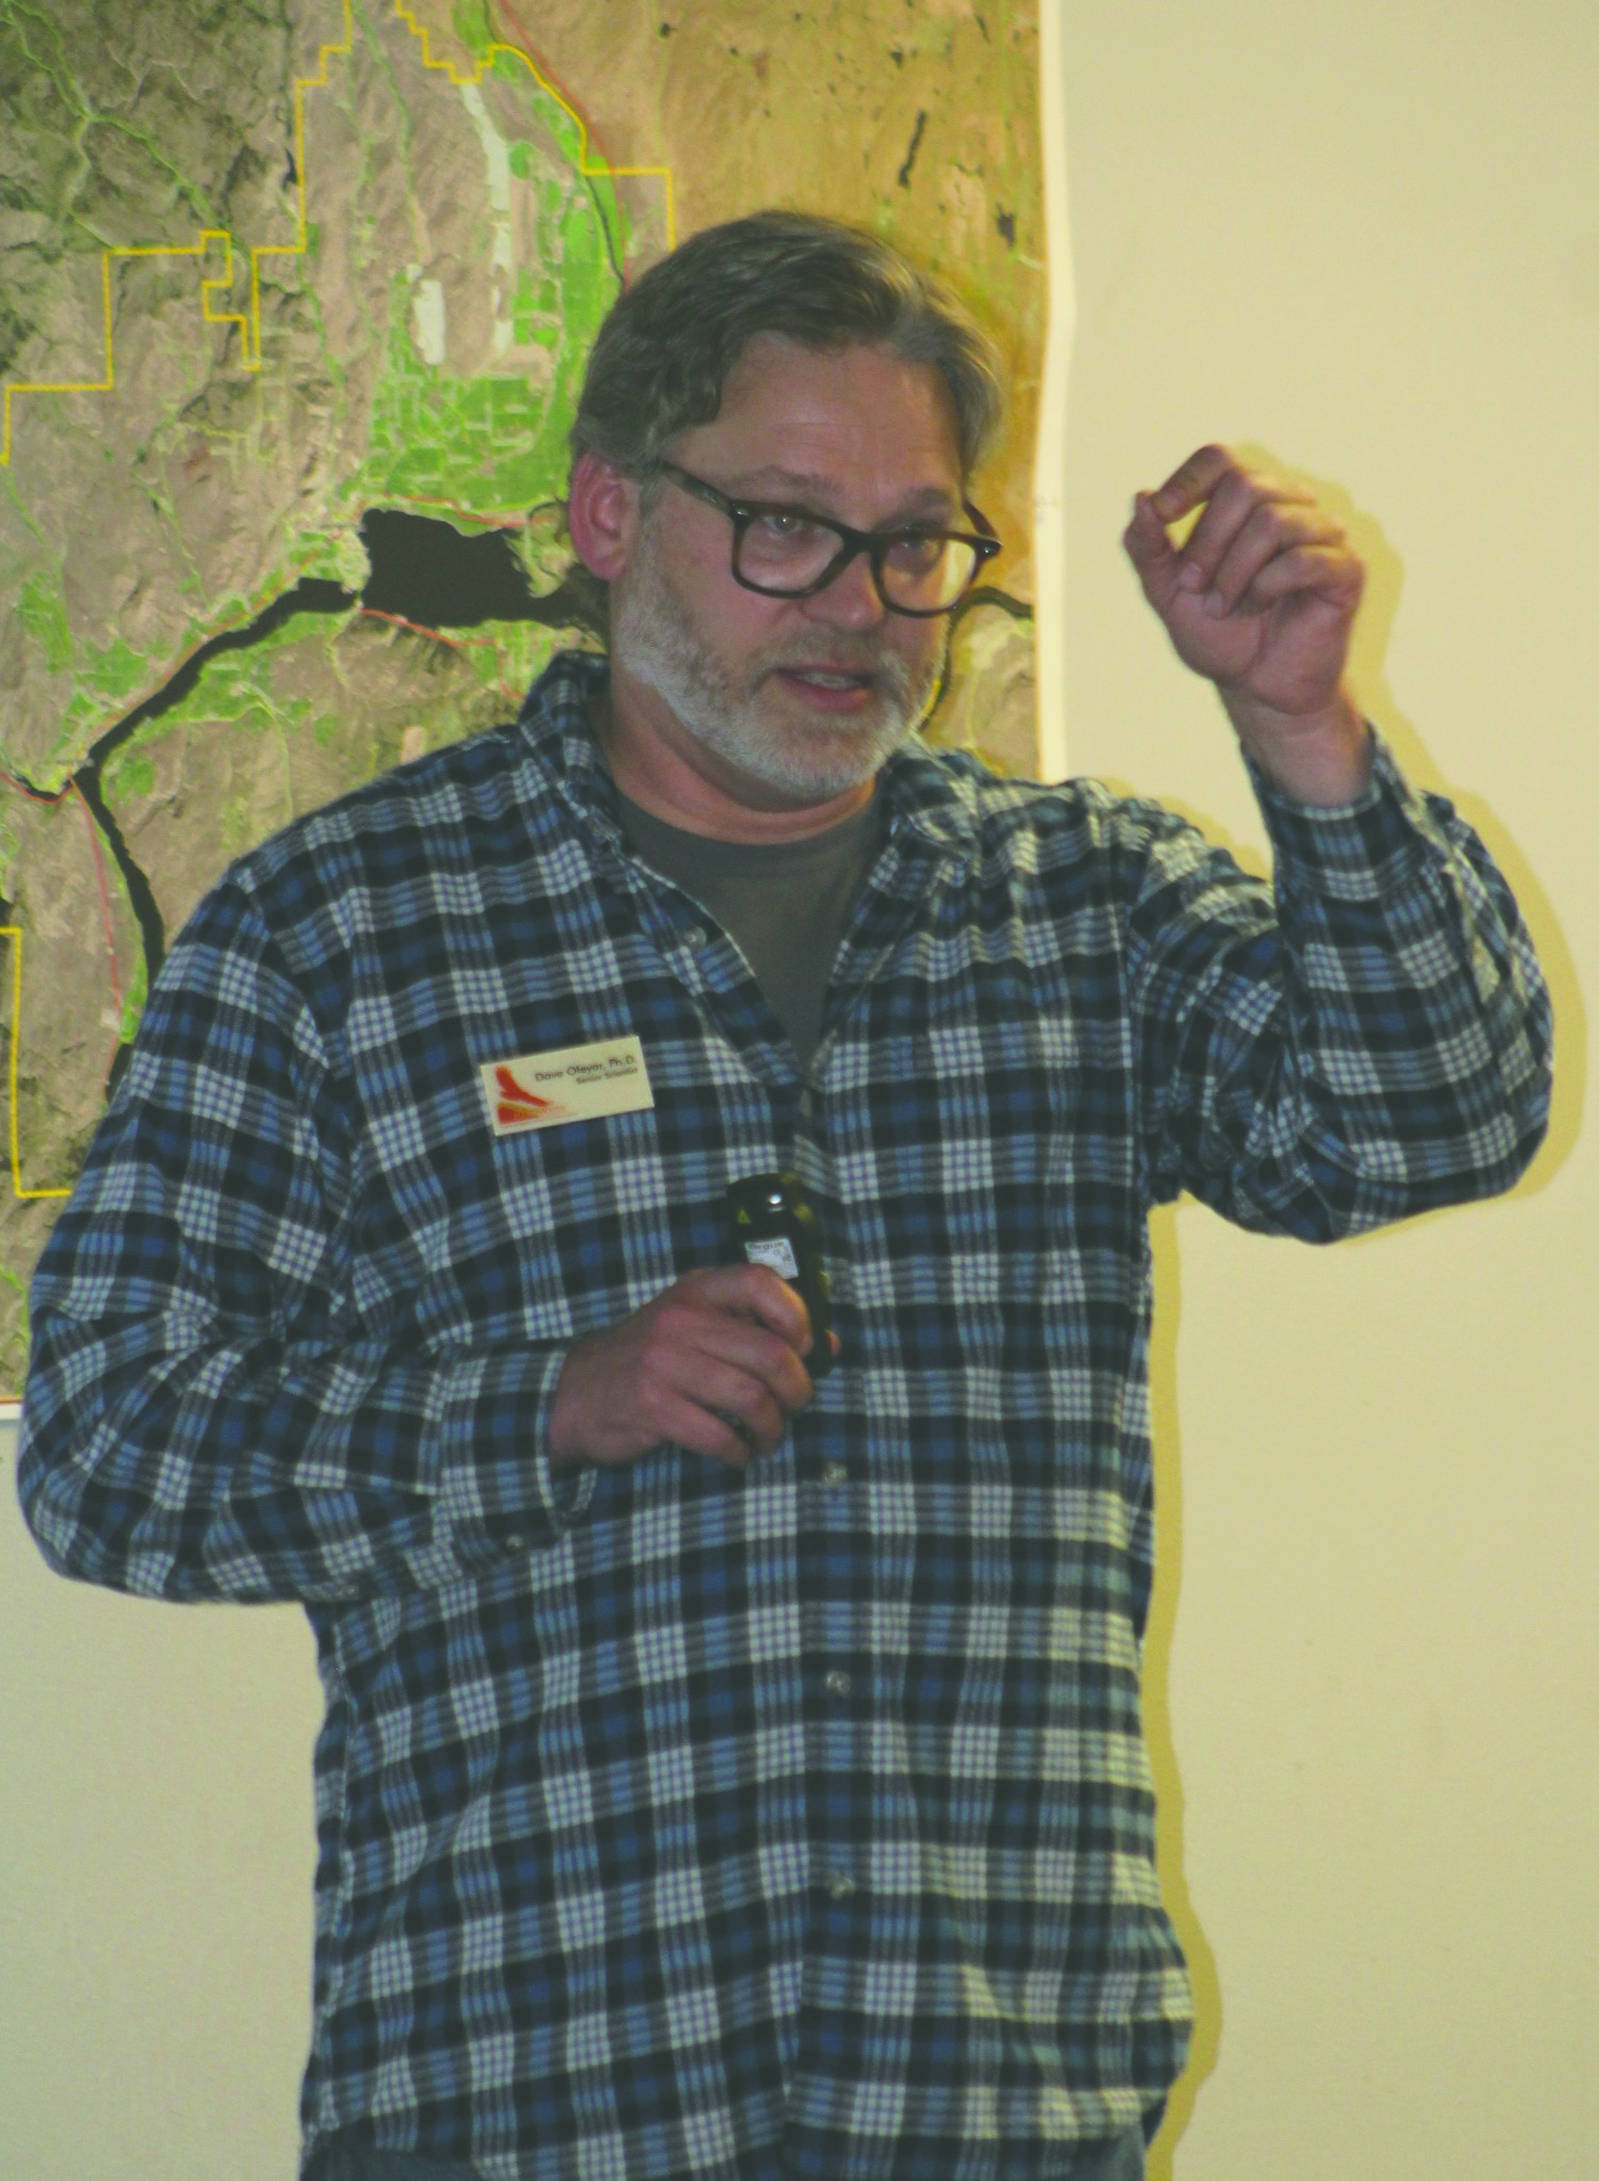 Dave Oleyar, Ph. D, representing HawkWatch International presented a slide show and lecture on Migration and Raptor Identification to more than 50 interested listeners at the Pateros Fire Hall last Friday evening. Photo: Dave Oleyar, Ph.D.